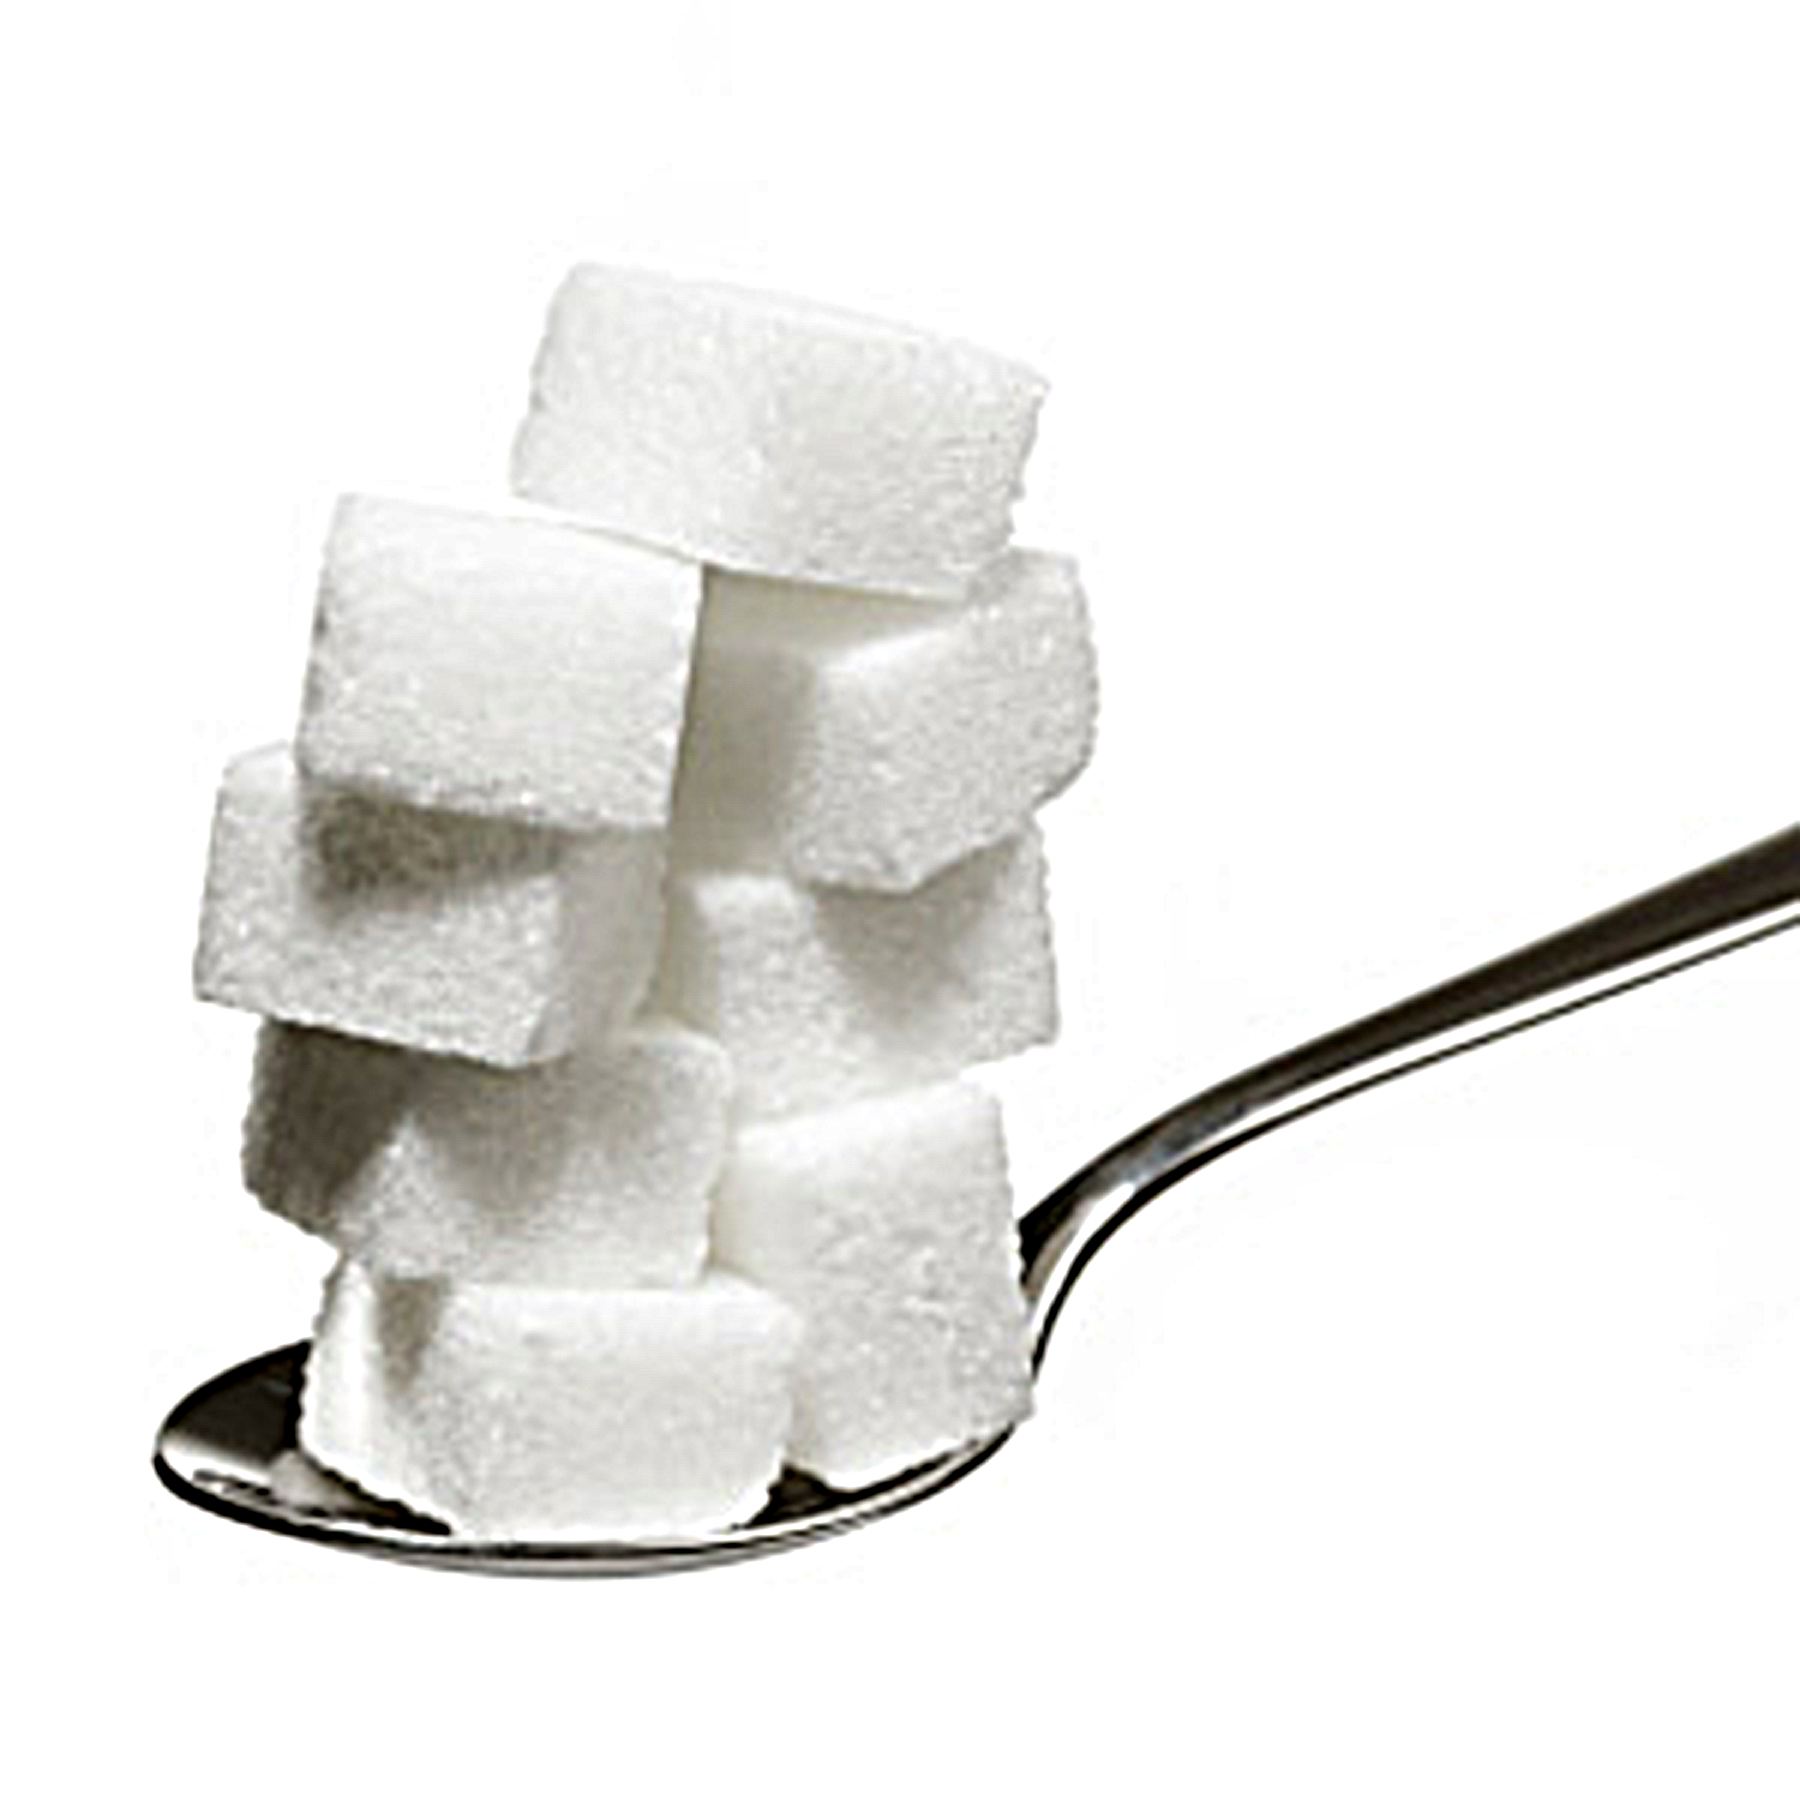 Sugar cubes clipart picture black and white stock Sugar On Spoon Doctored   Free Images at Clker.com - vector ... picture black and white stock